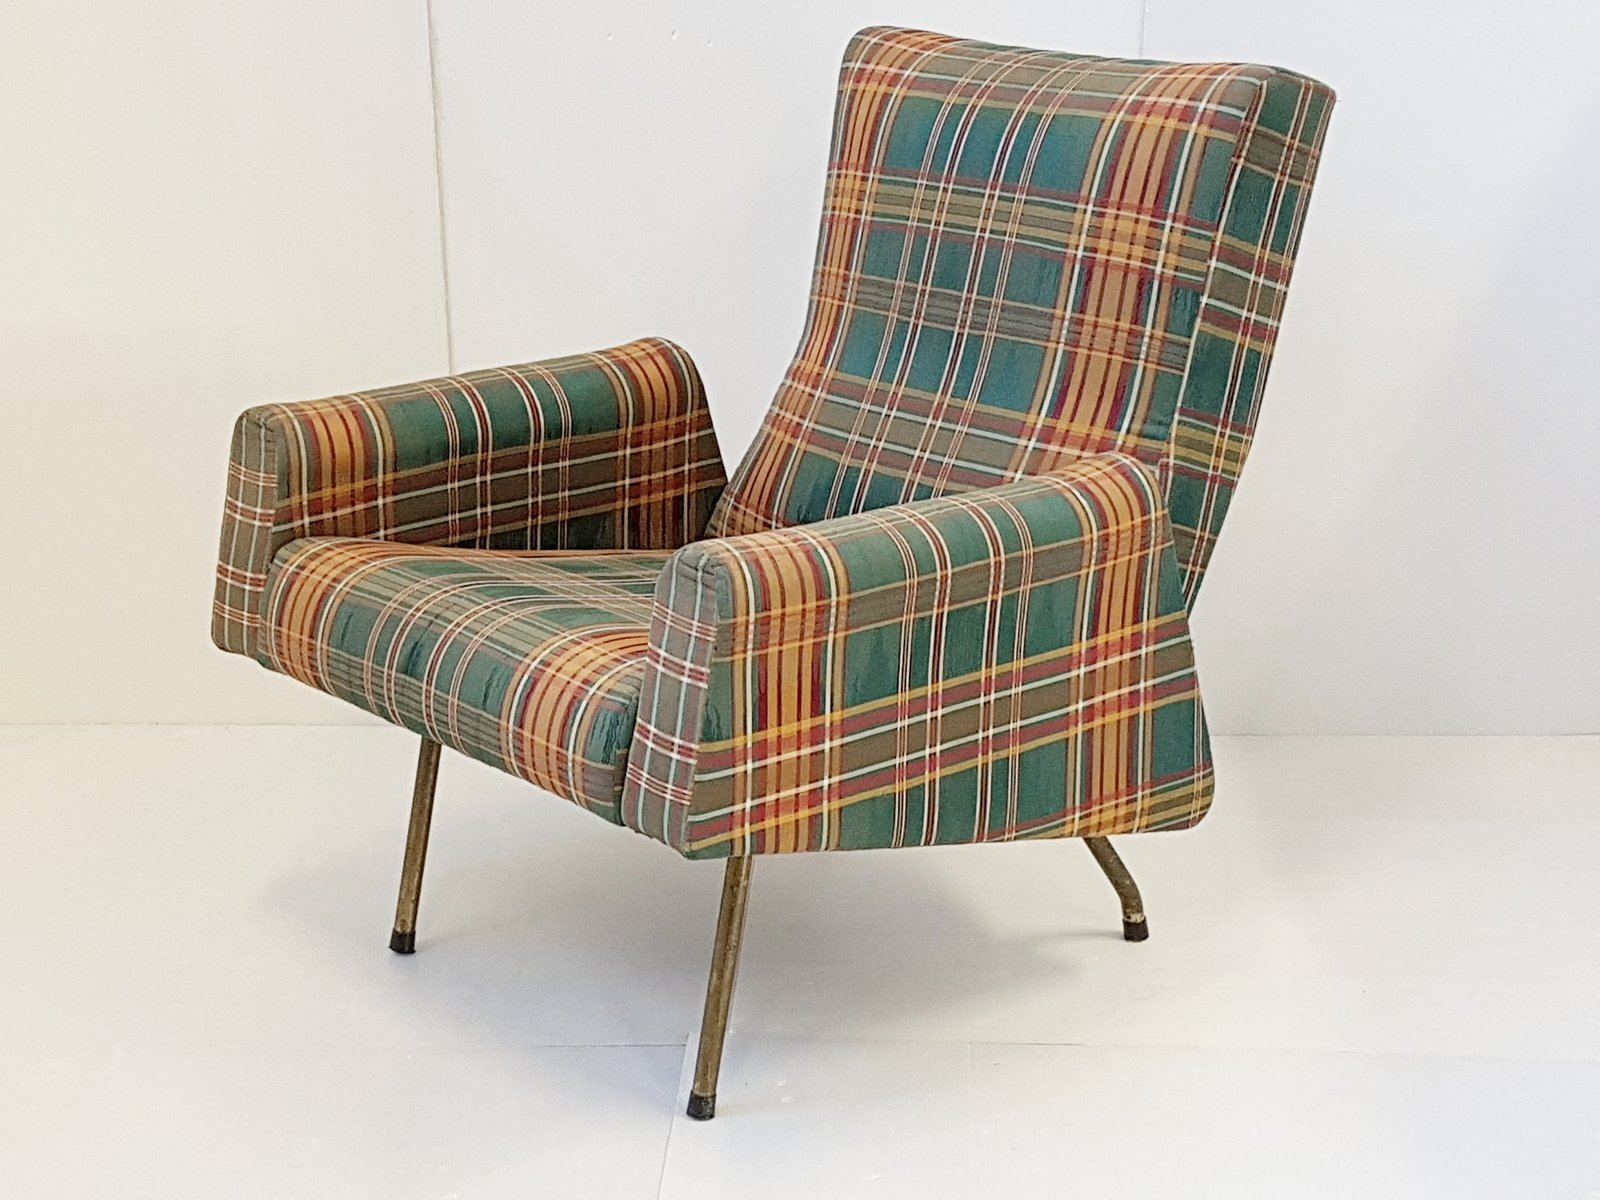 Lounge Chairs by Louis Paolozzi for Zol 1950s Set of 2 for sale